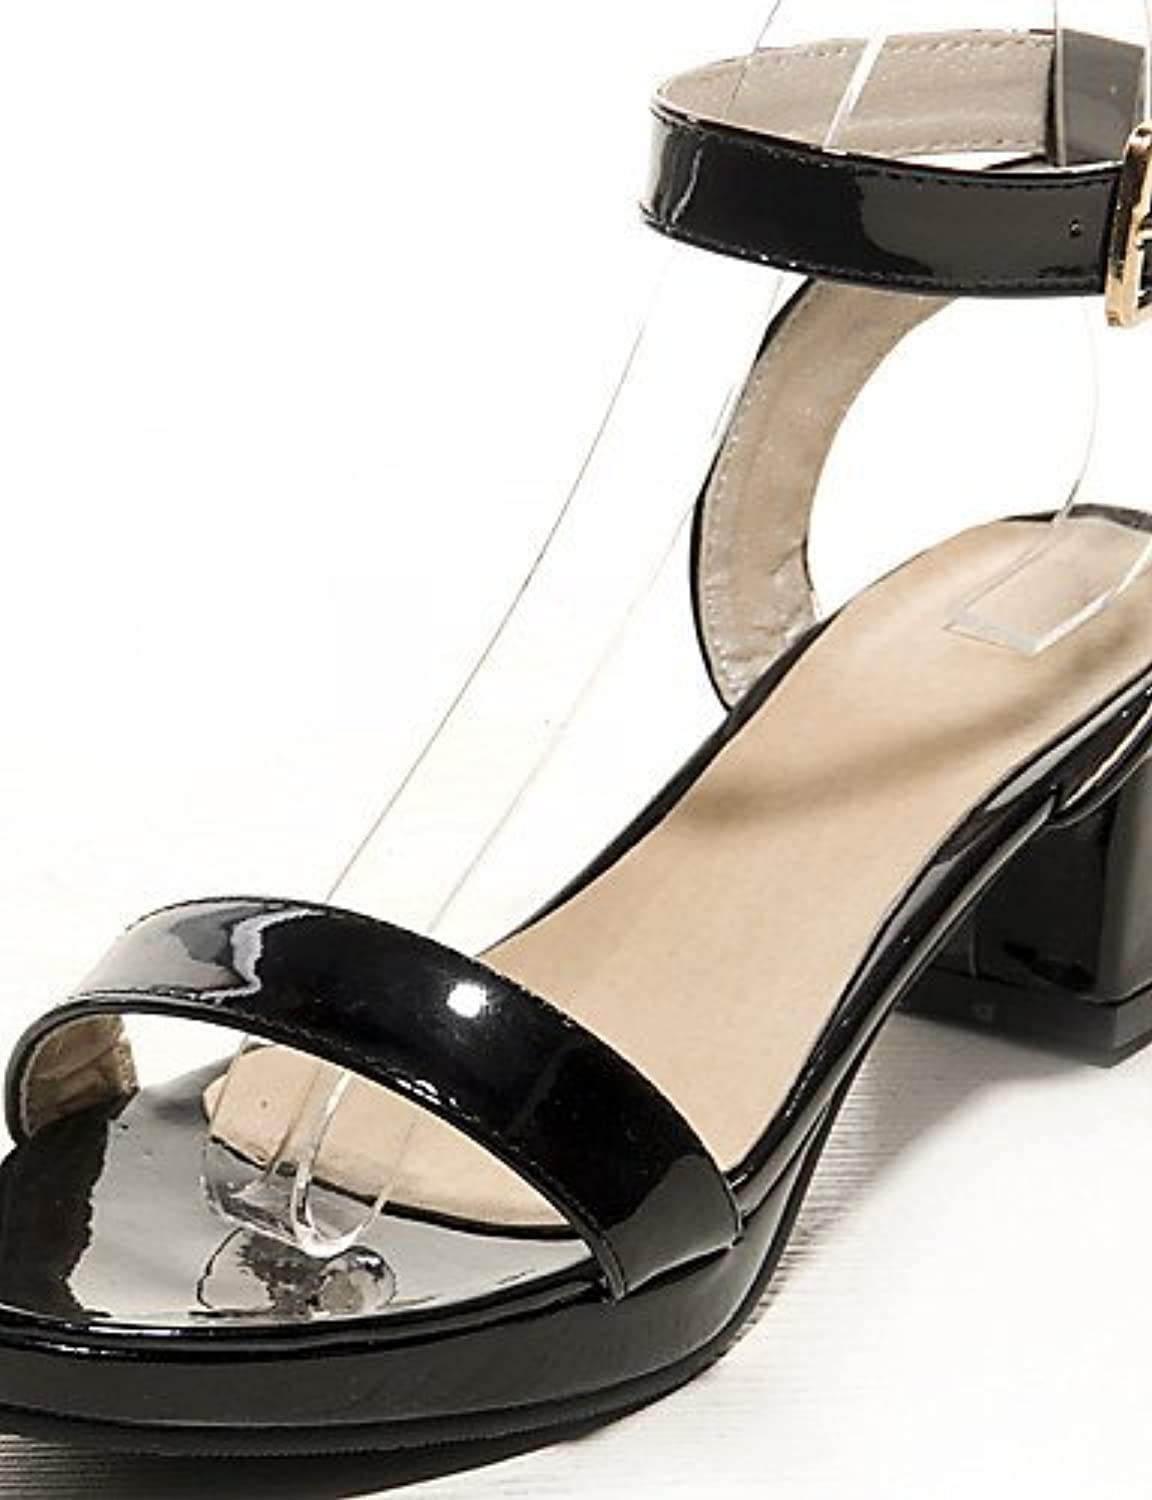 72750df98bb2 ShangYi Women s Shoes Chunky Heel Platform   D Orsay D Orsay D Orsay   Two- Piece   Ankle Strap Sandals Casual Black   Green  ... B01FZJLLDK Parent  d21b9c